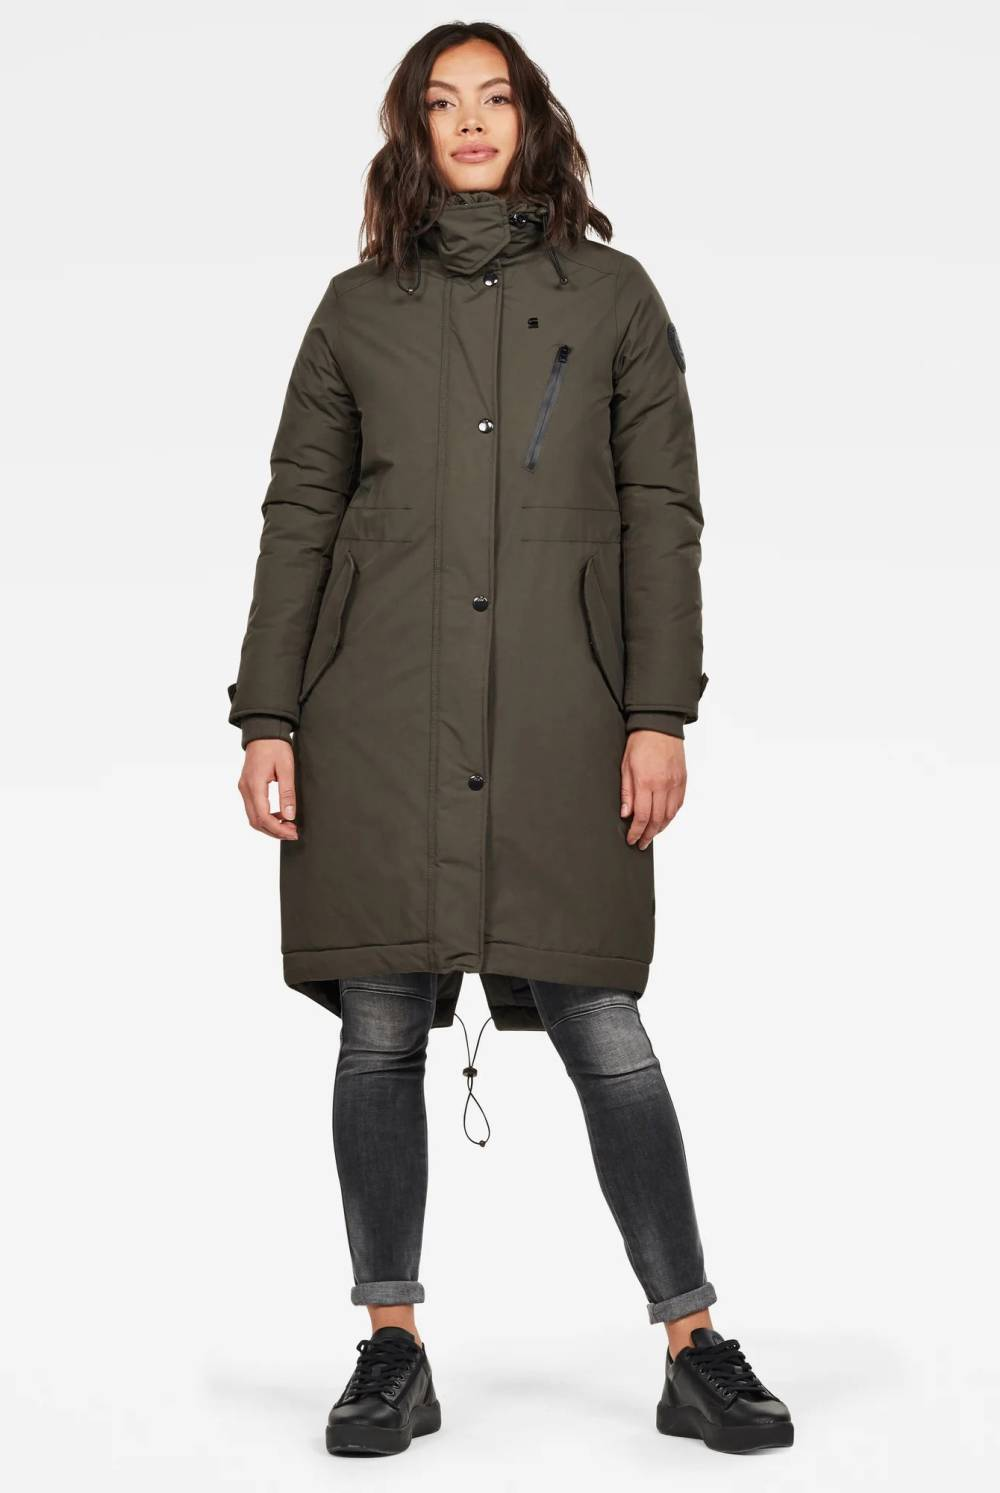 g star raw luxury recycled winter parka